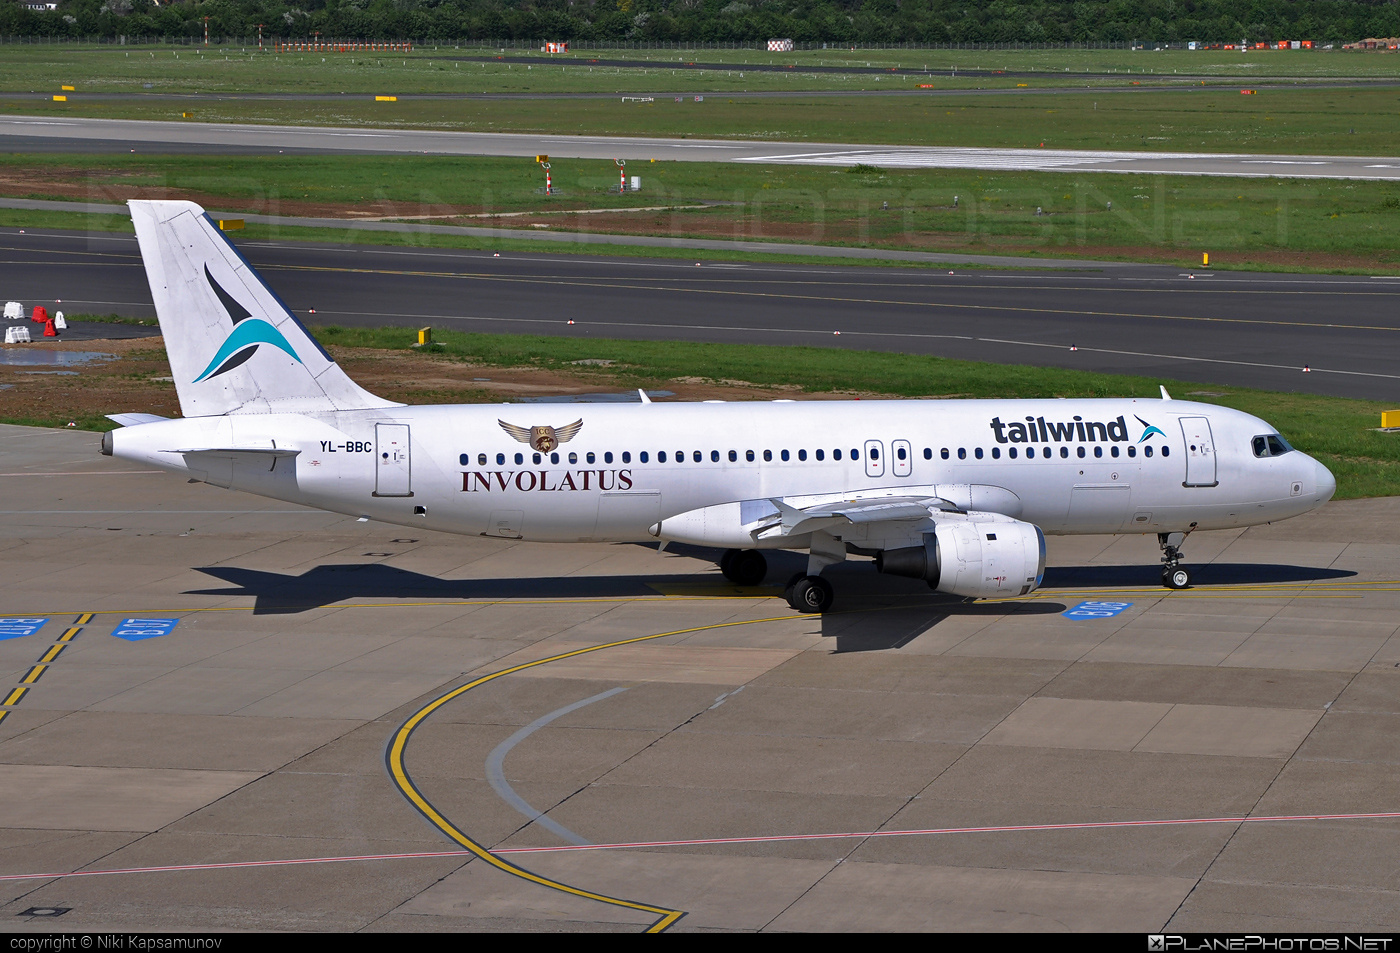 Airbus A320-211 - YL-BBC operated by Tailwind Airlines #a320 #a320family #airbus #airbus320